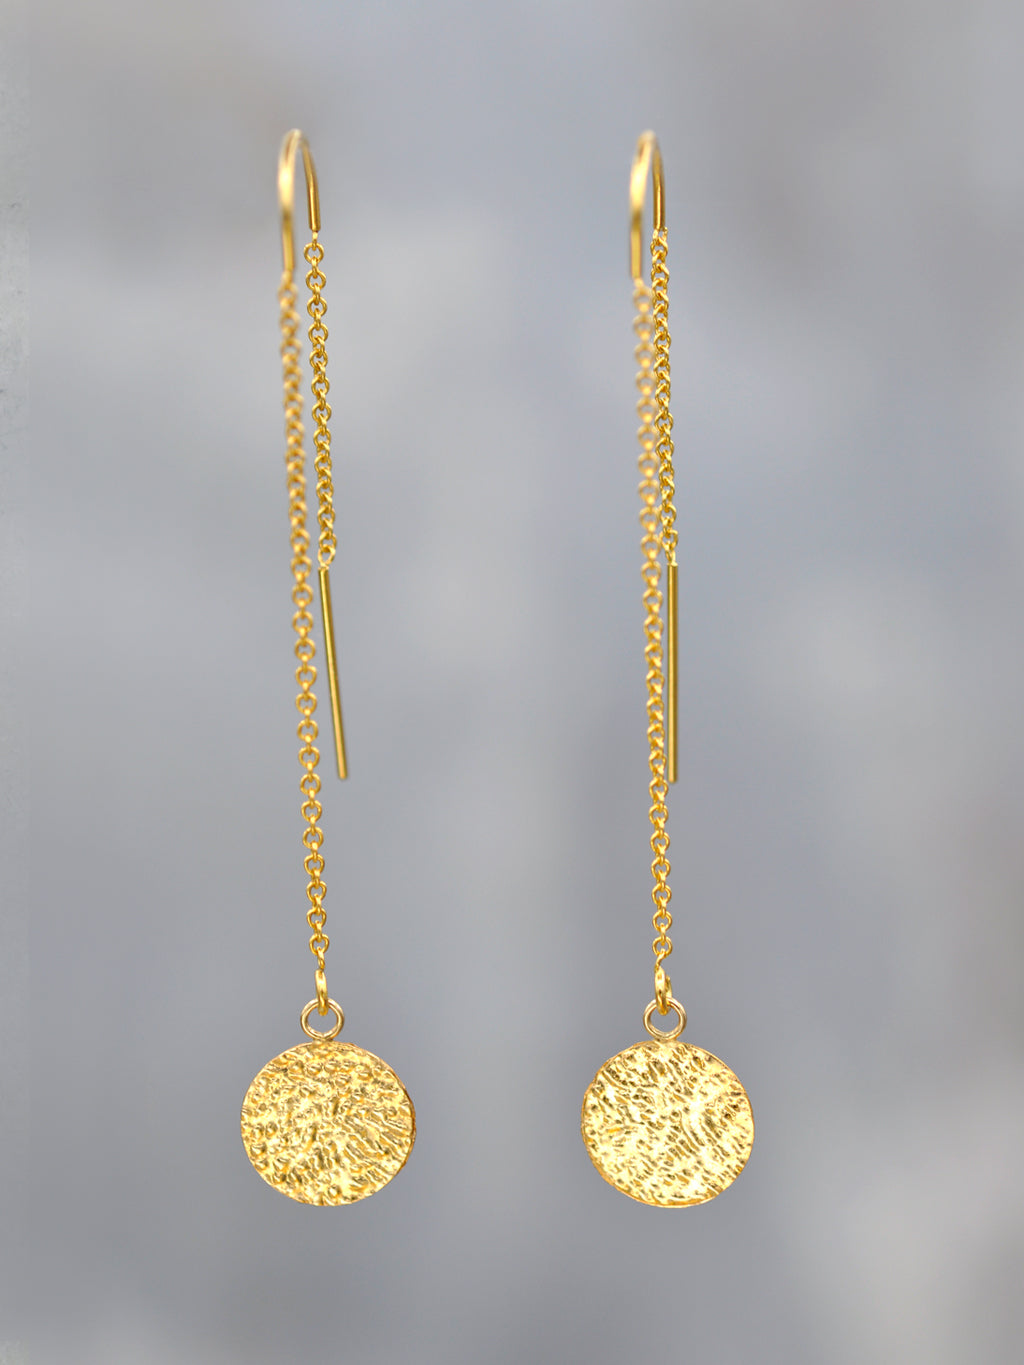 Textured Gold Disk Threader Earrings